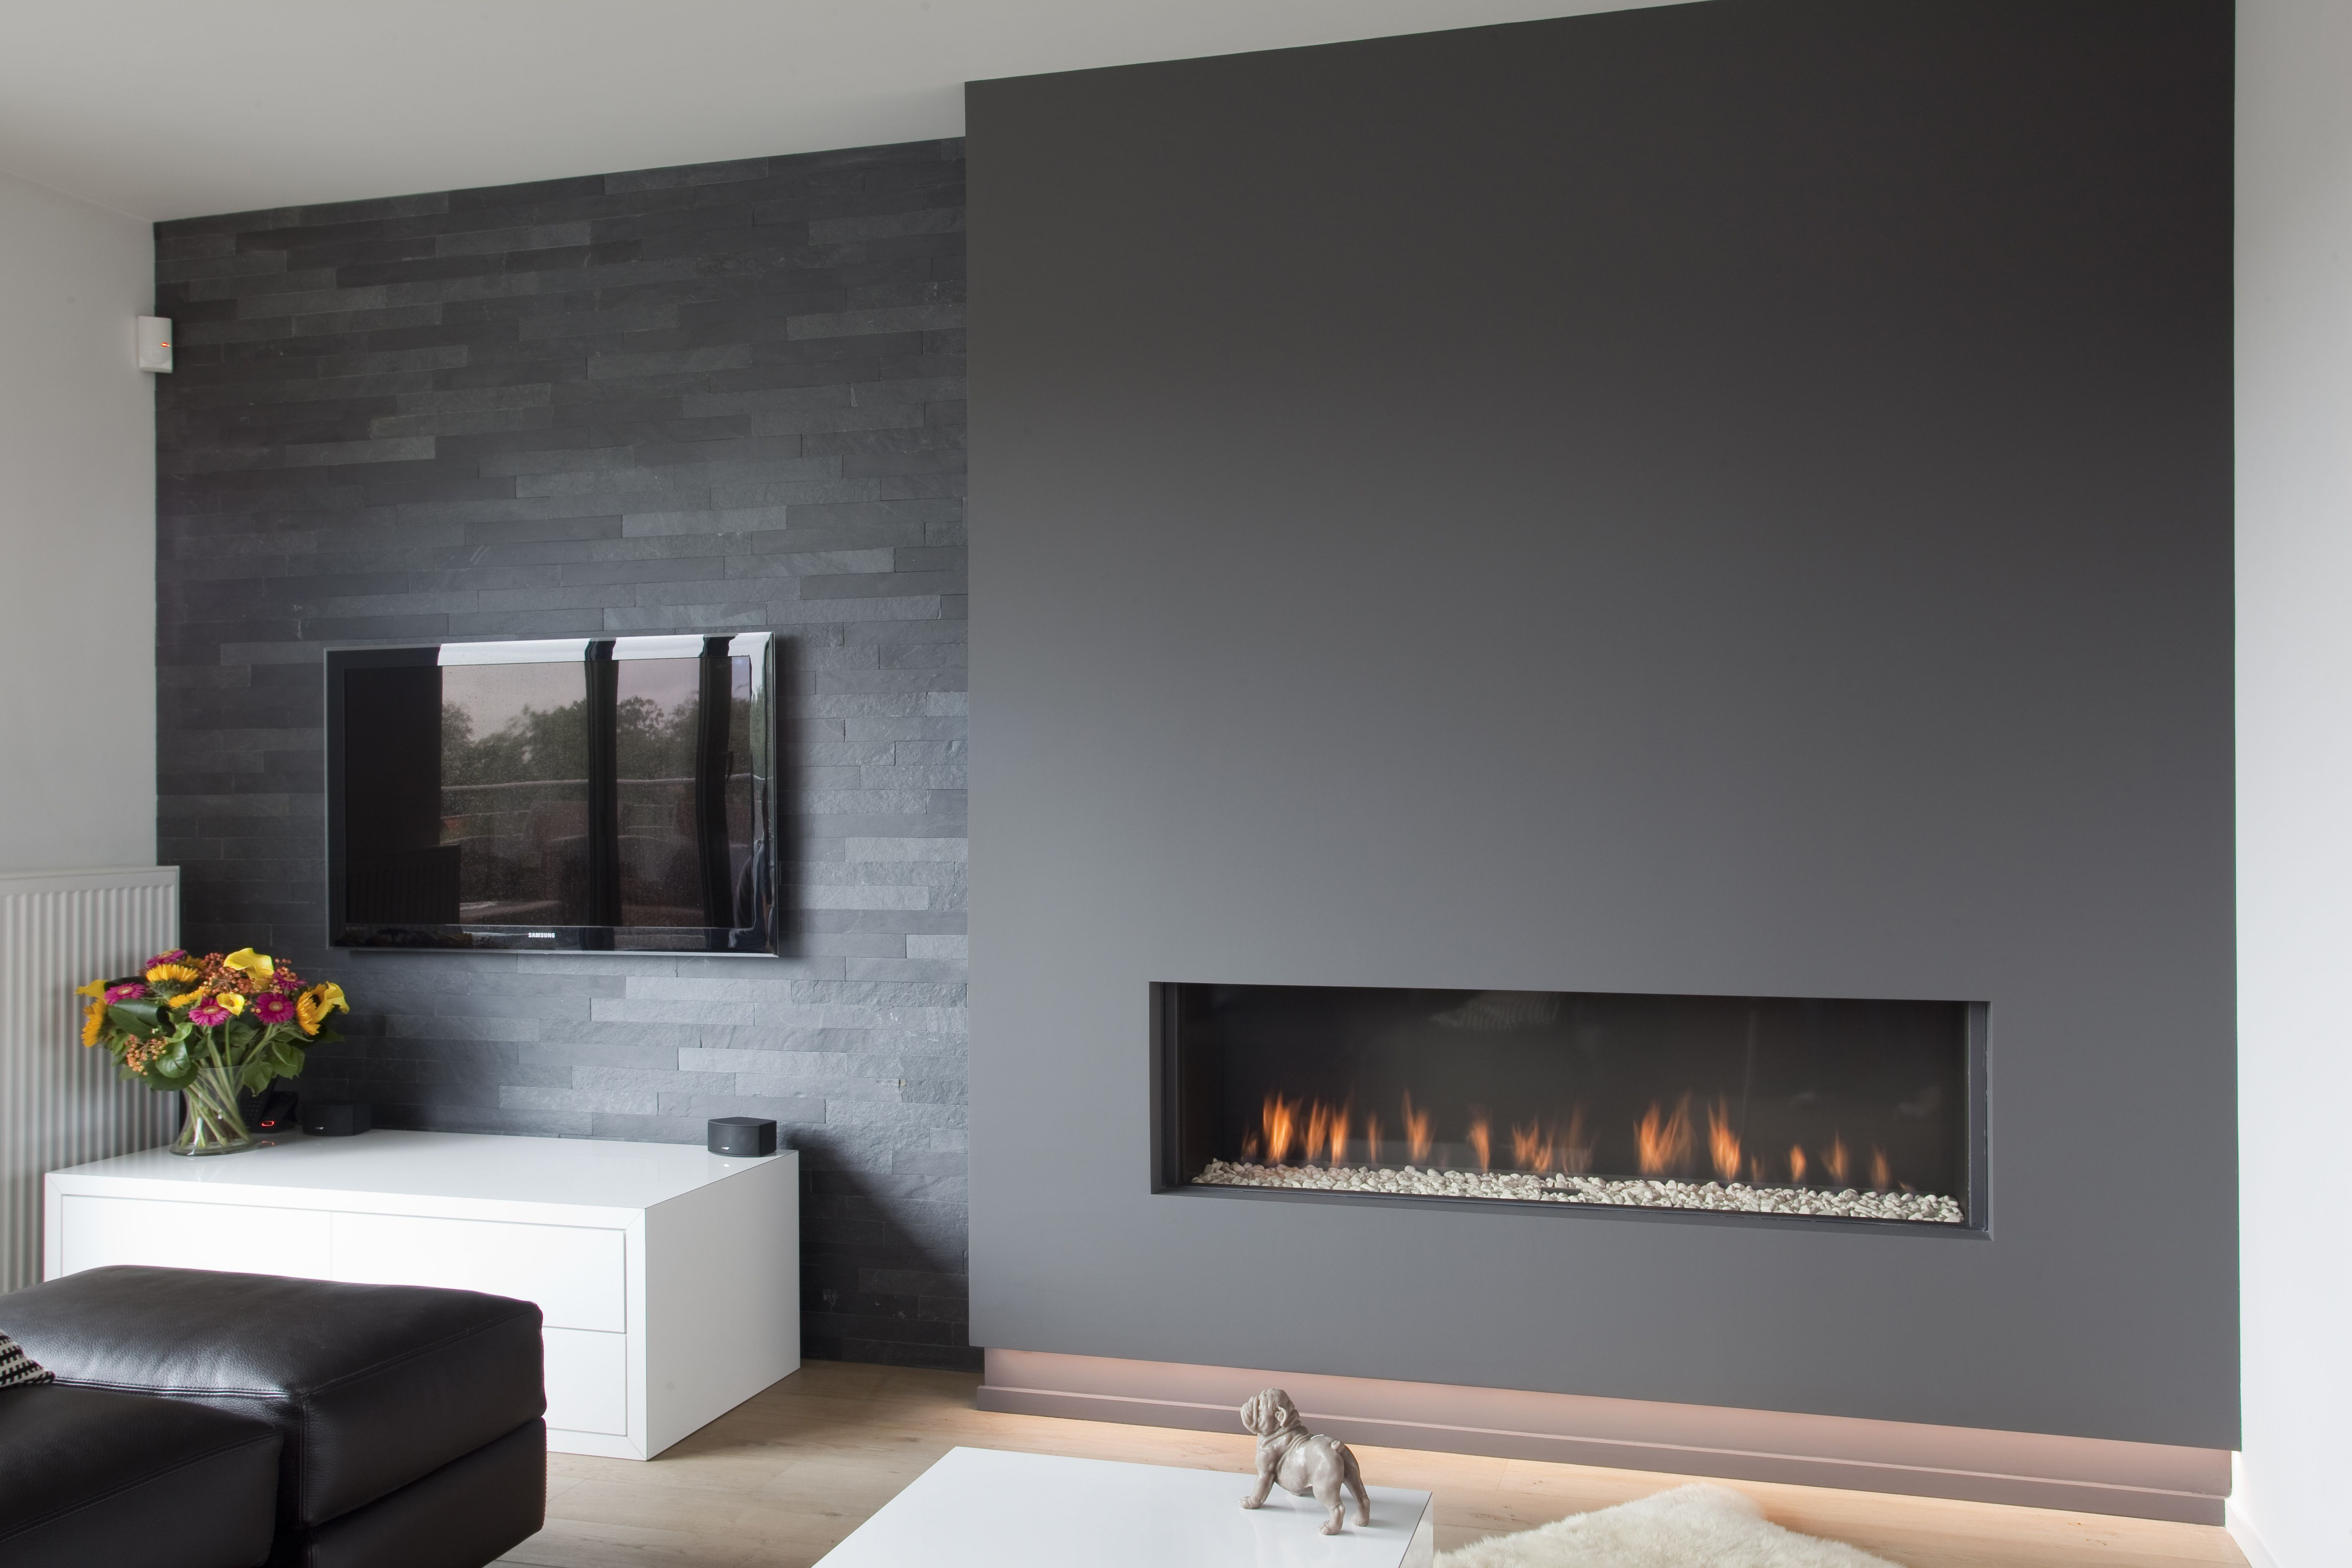 gashaard in moderne wand televisiewand bekleed met natuursteen gas fireplace in modern wall. Black Bedroom Furniture Sets. Home Design Ideas